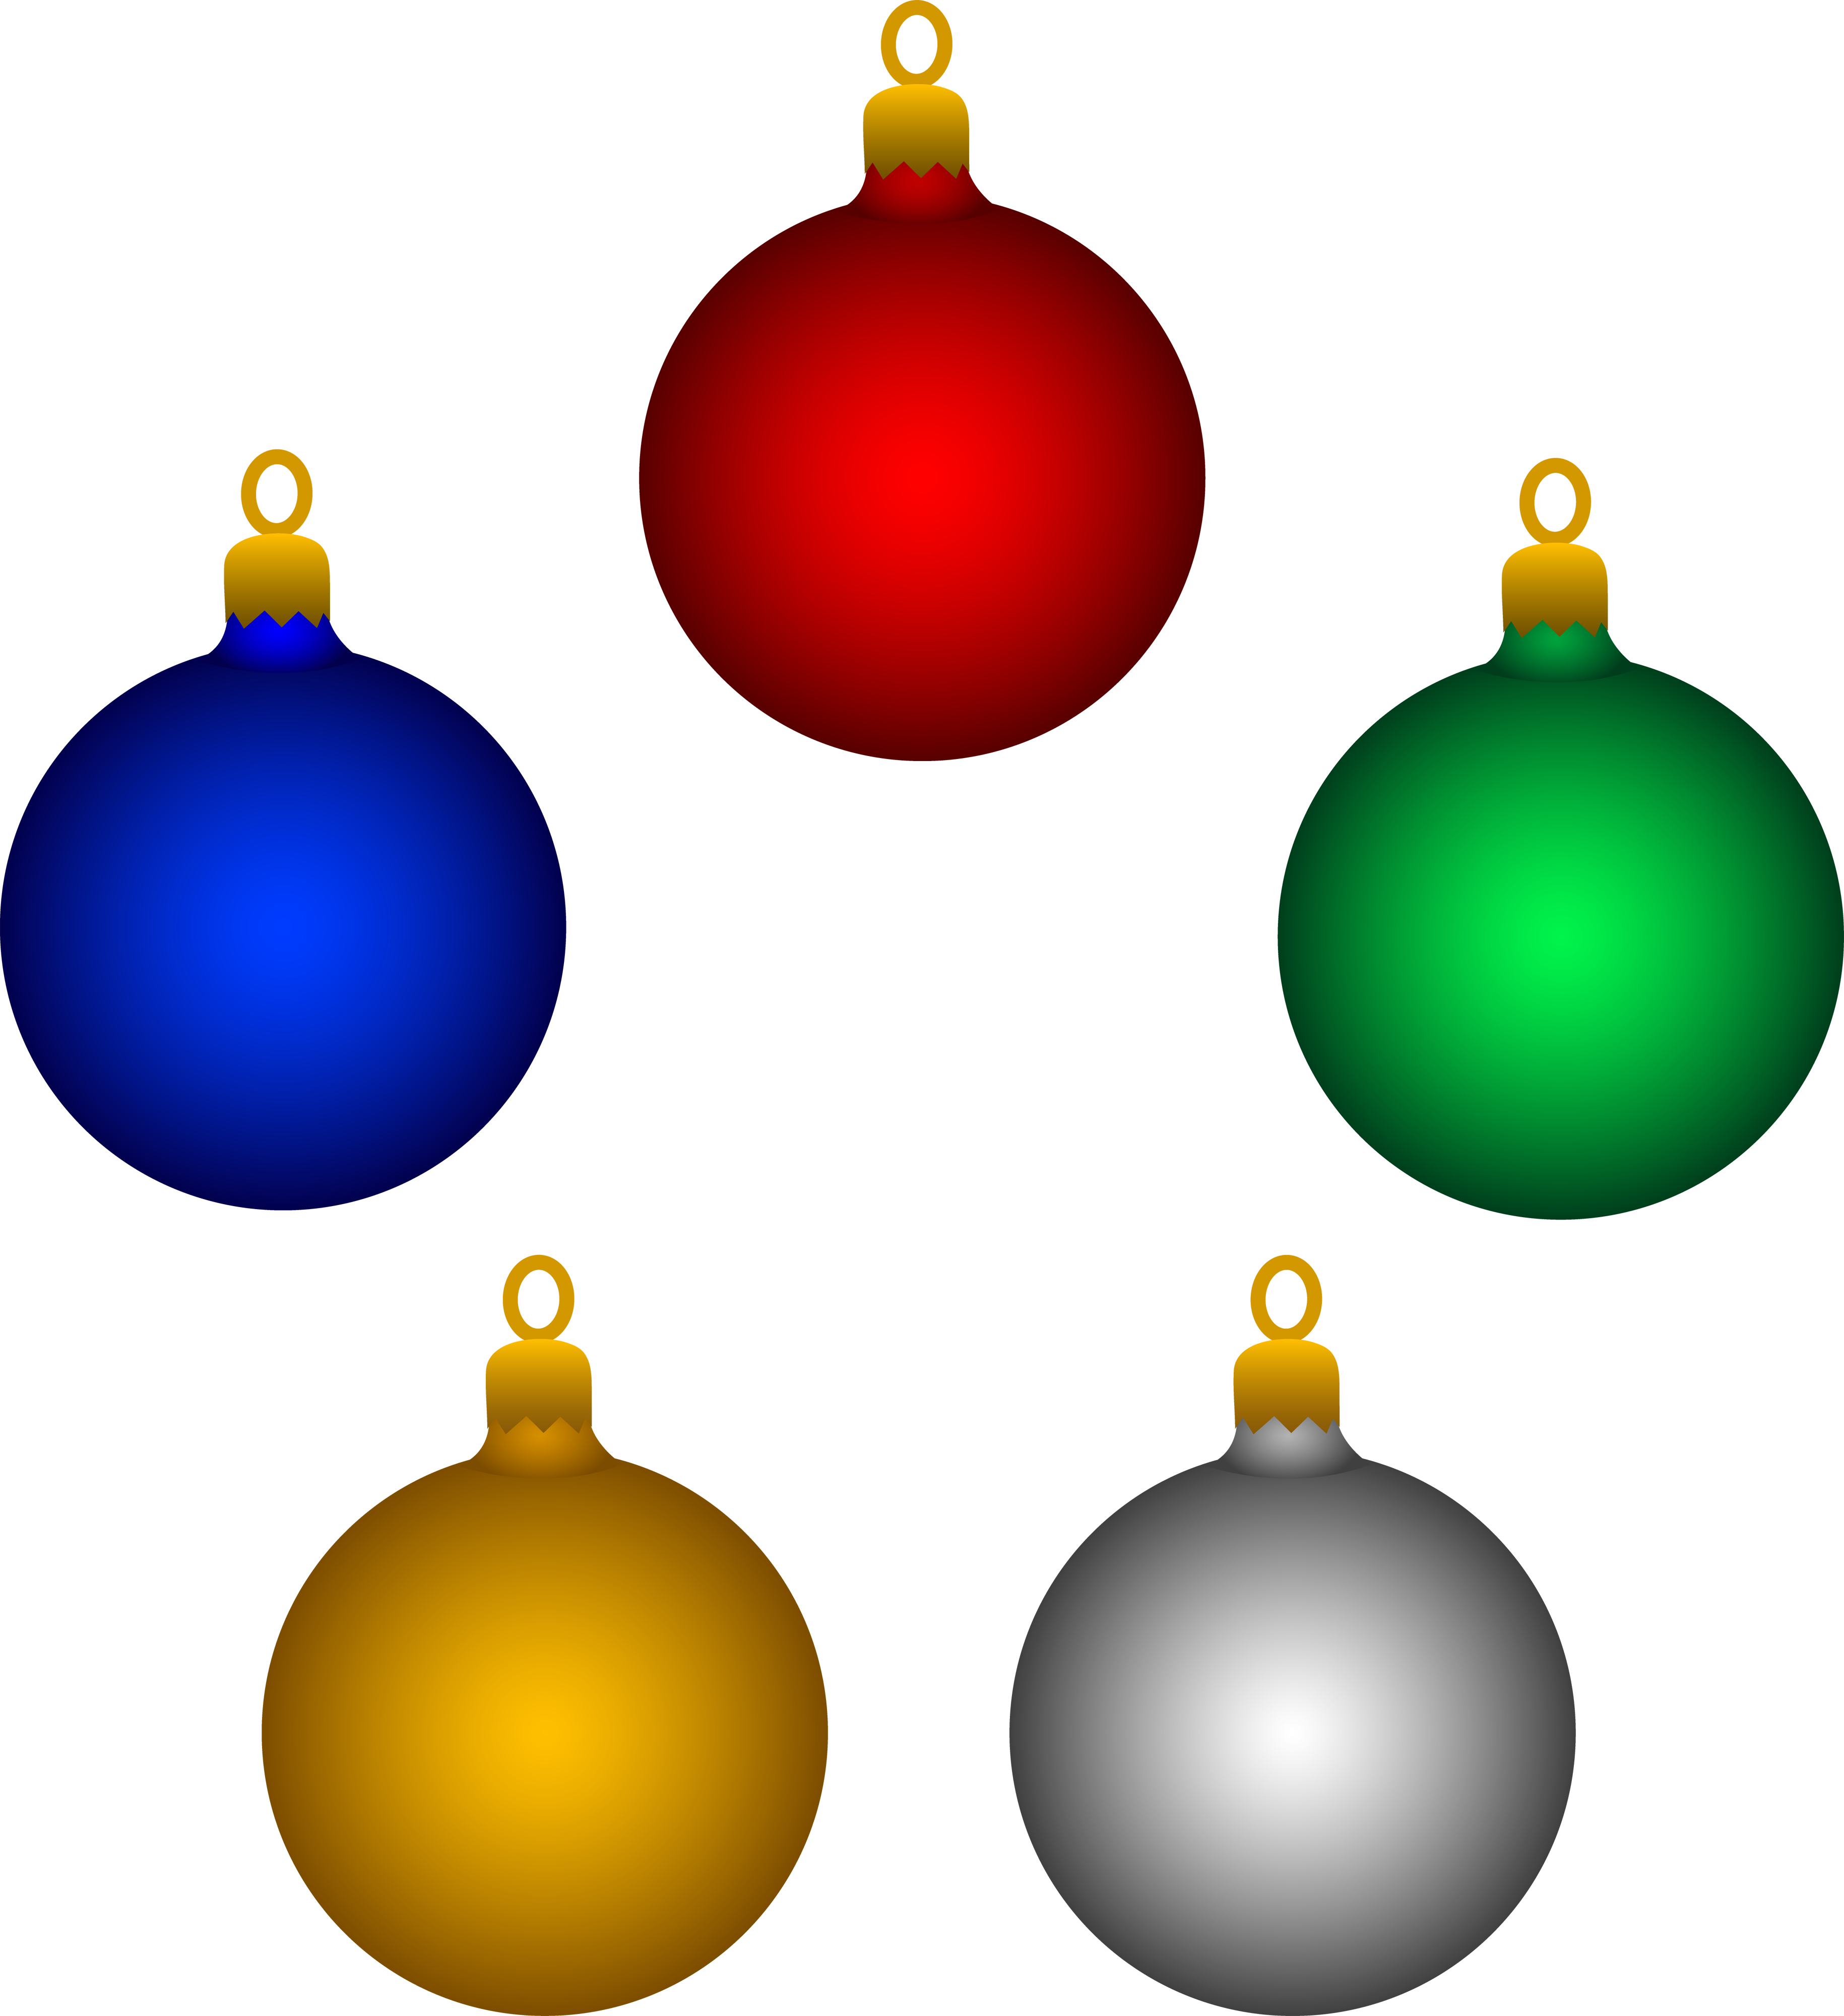 3659x4000 Five Shiny Christmas Tree Ornaments Free Clip Art